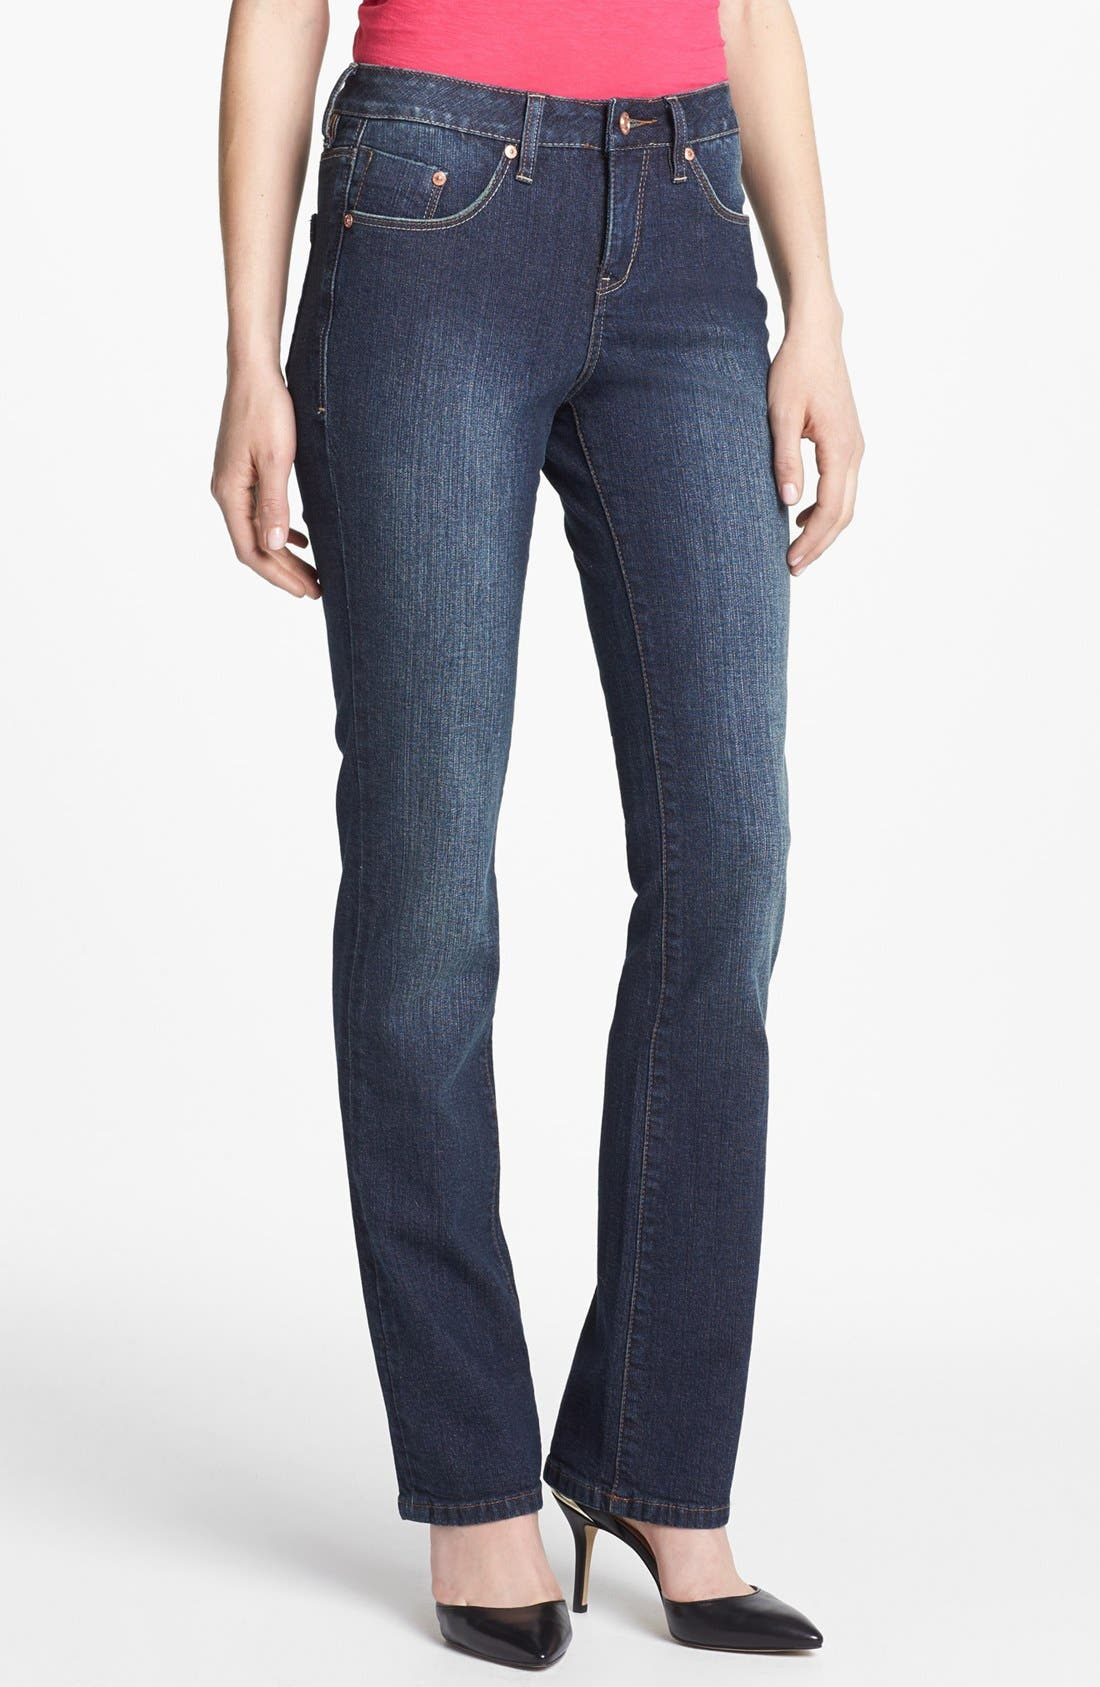 Alternate Image 1 Selected - Jag Jeans 'Foster' Bootcut Jeans (Blue English) (Petite)